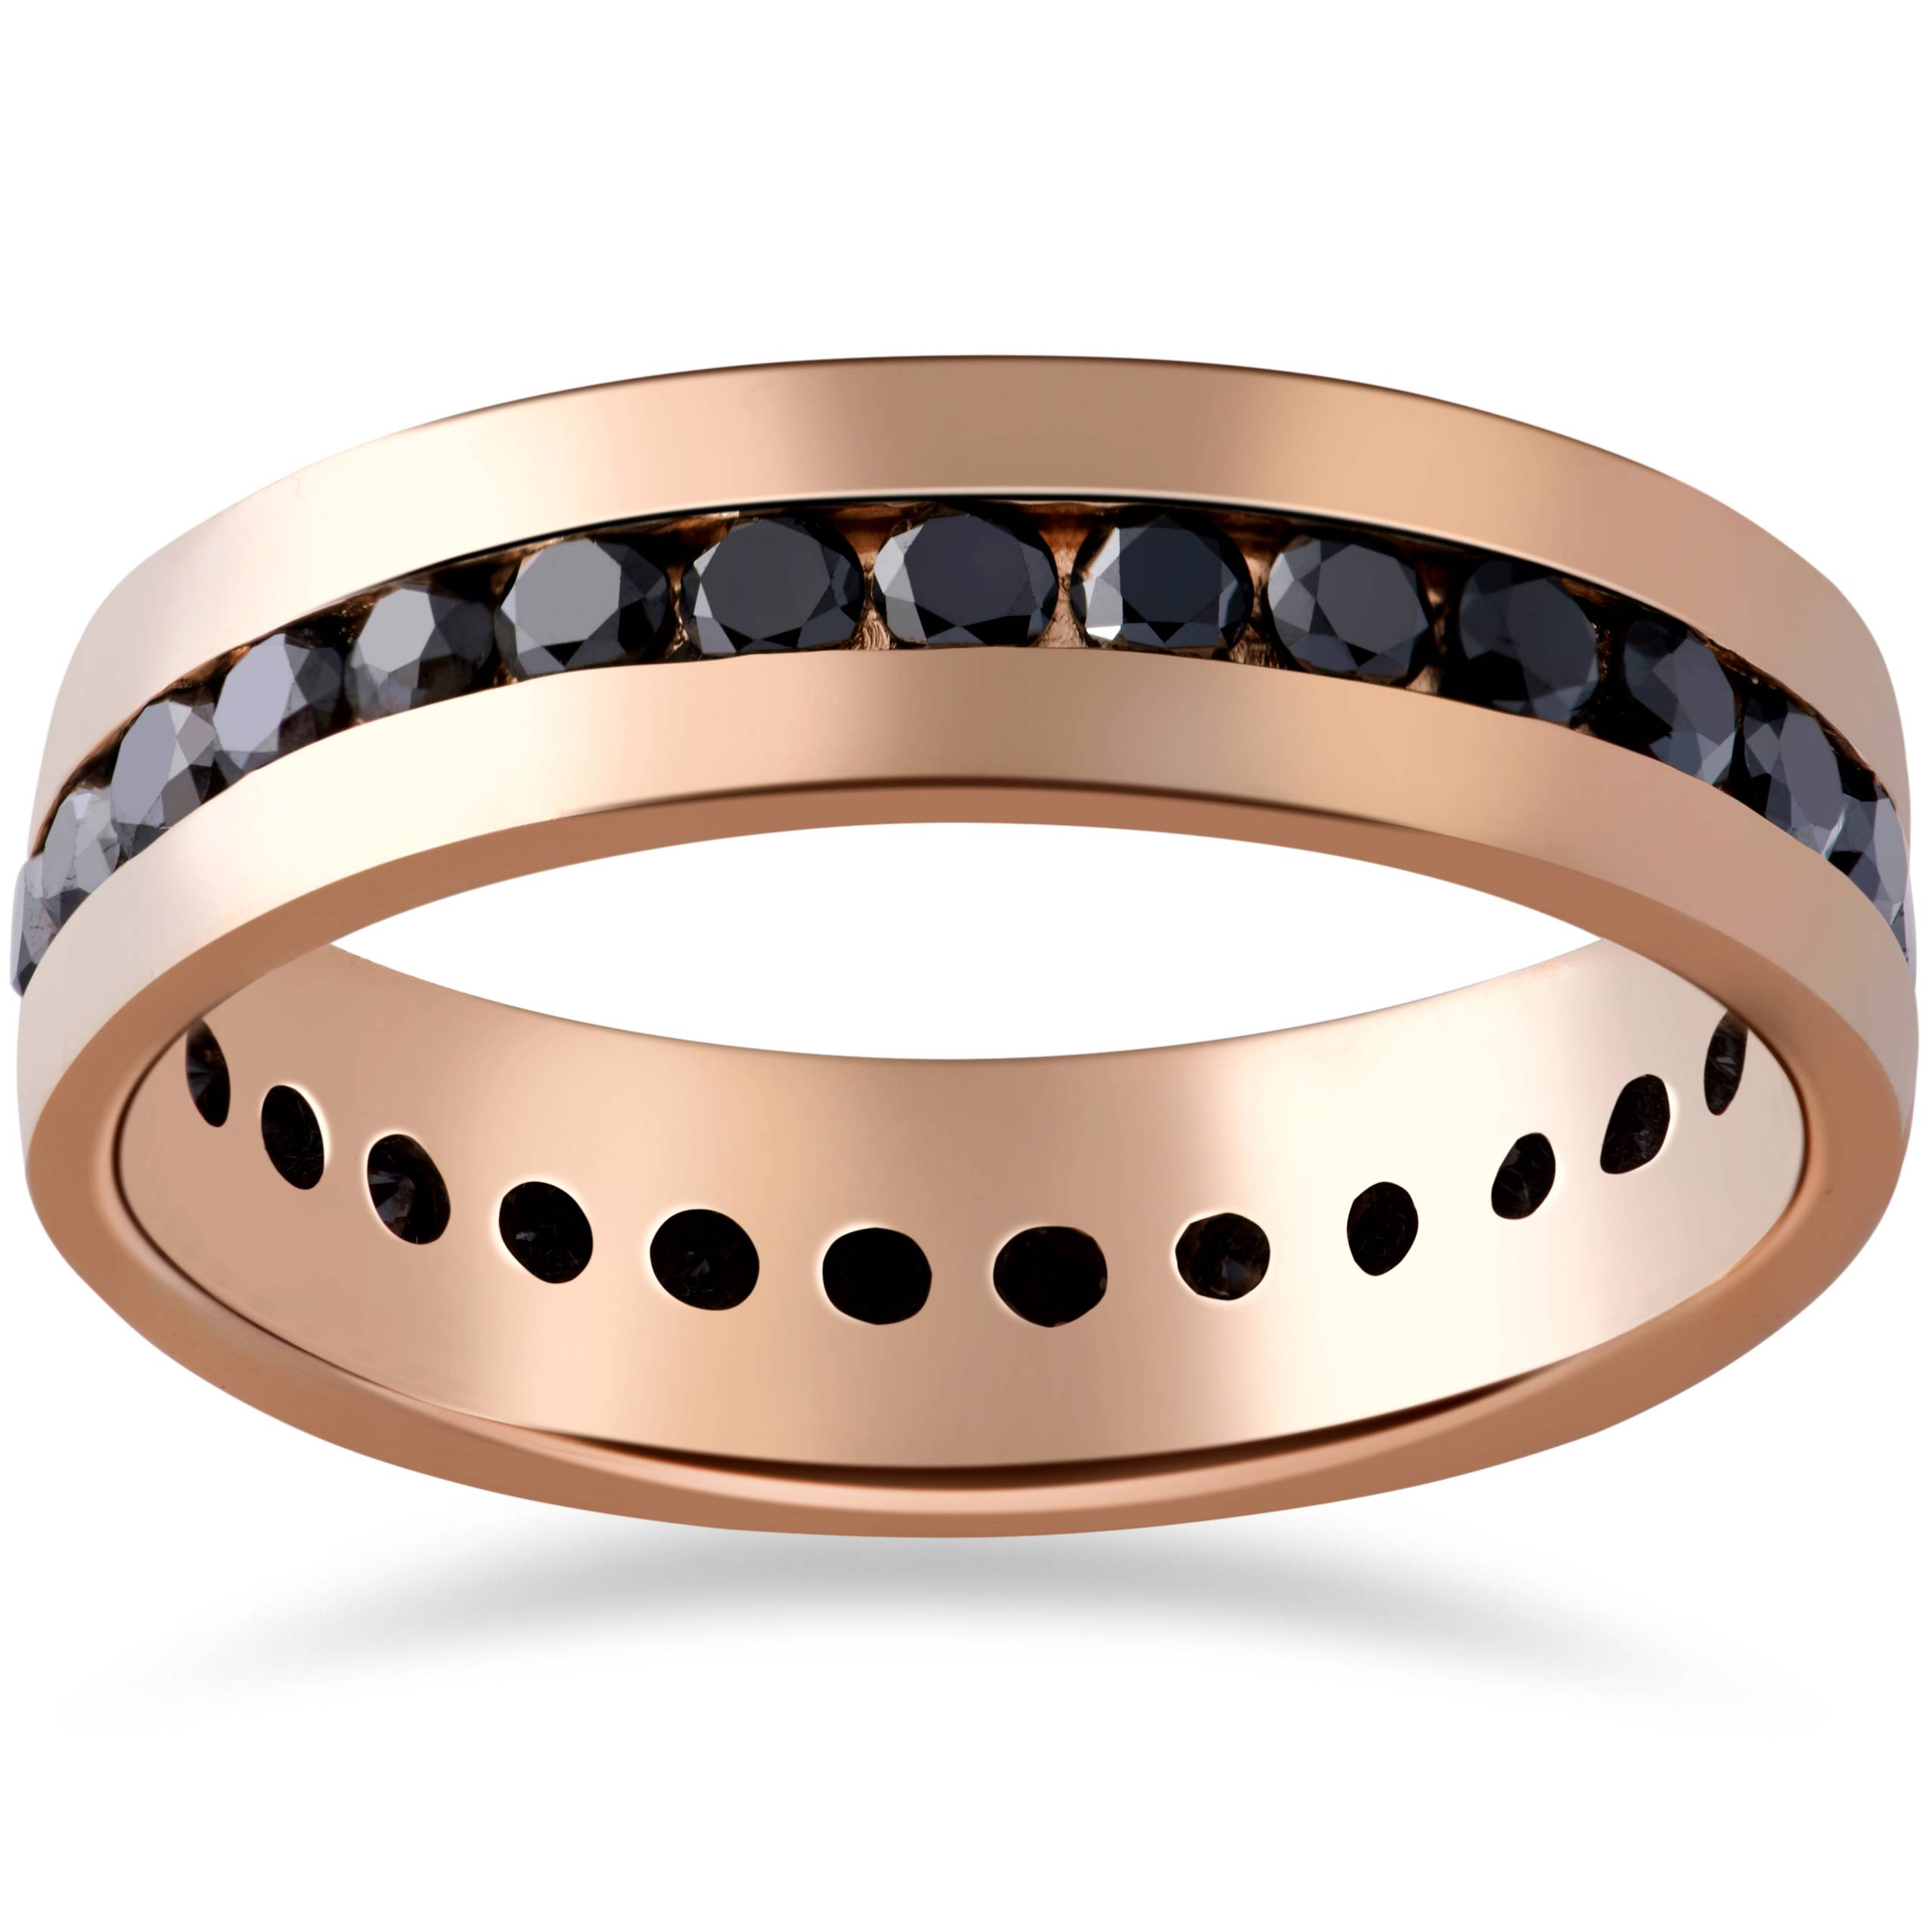 1 1 4ct black diamond channel set eternity ring 14k rose gold mens wedding band ebay. Black Bedroom Furniture Sets. Home Design Ideas